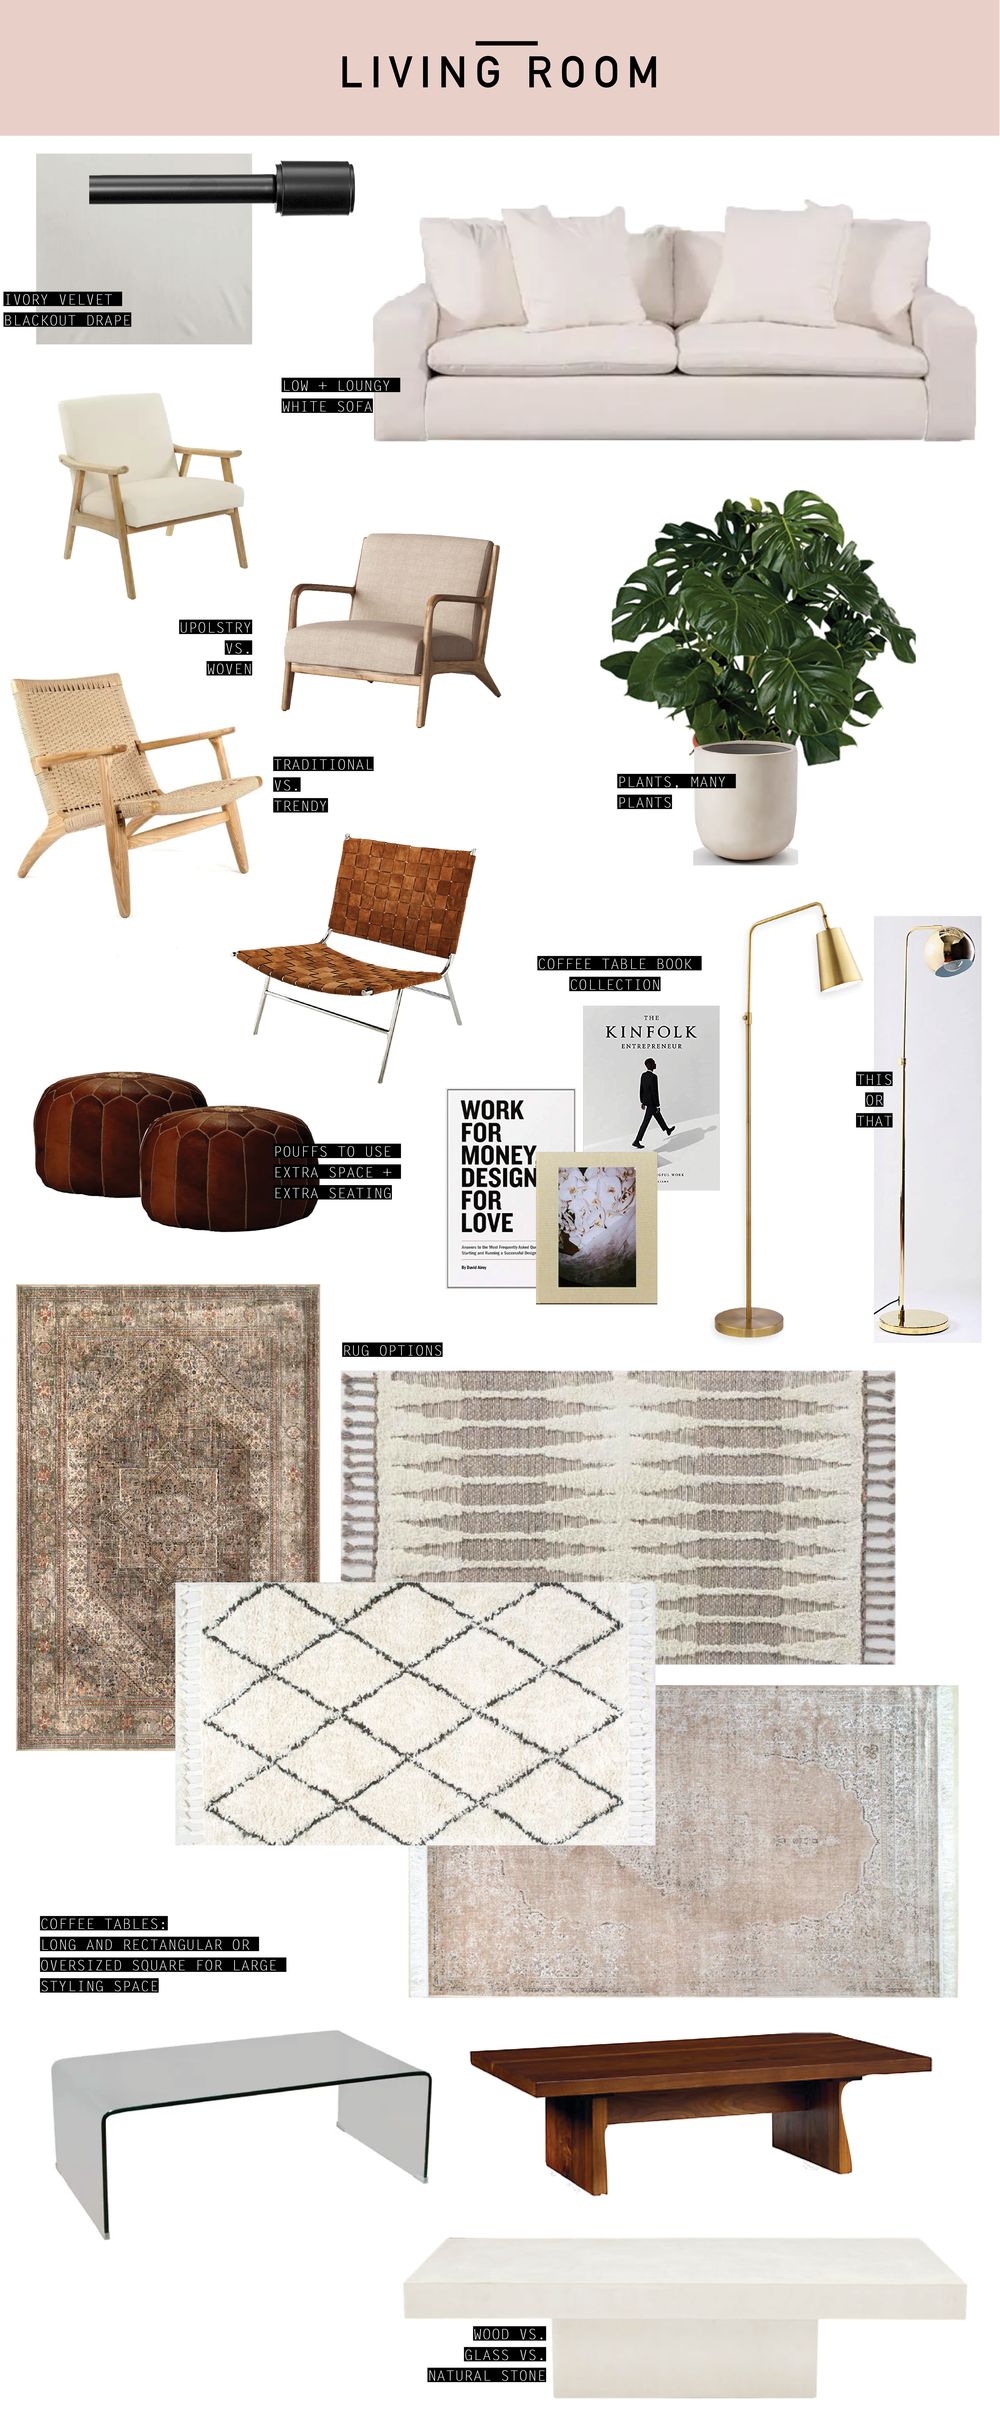 living room full concept board (7).png